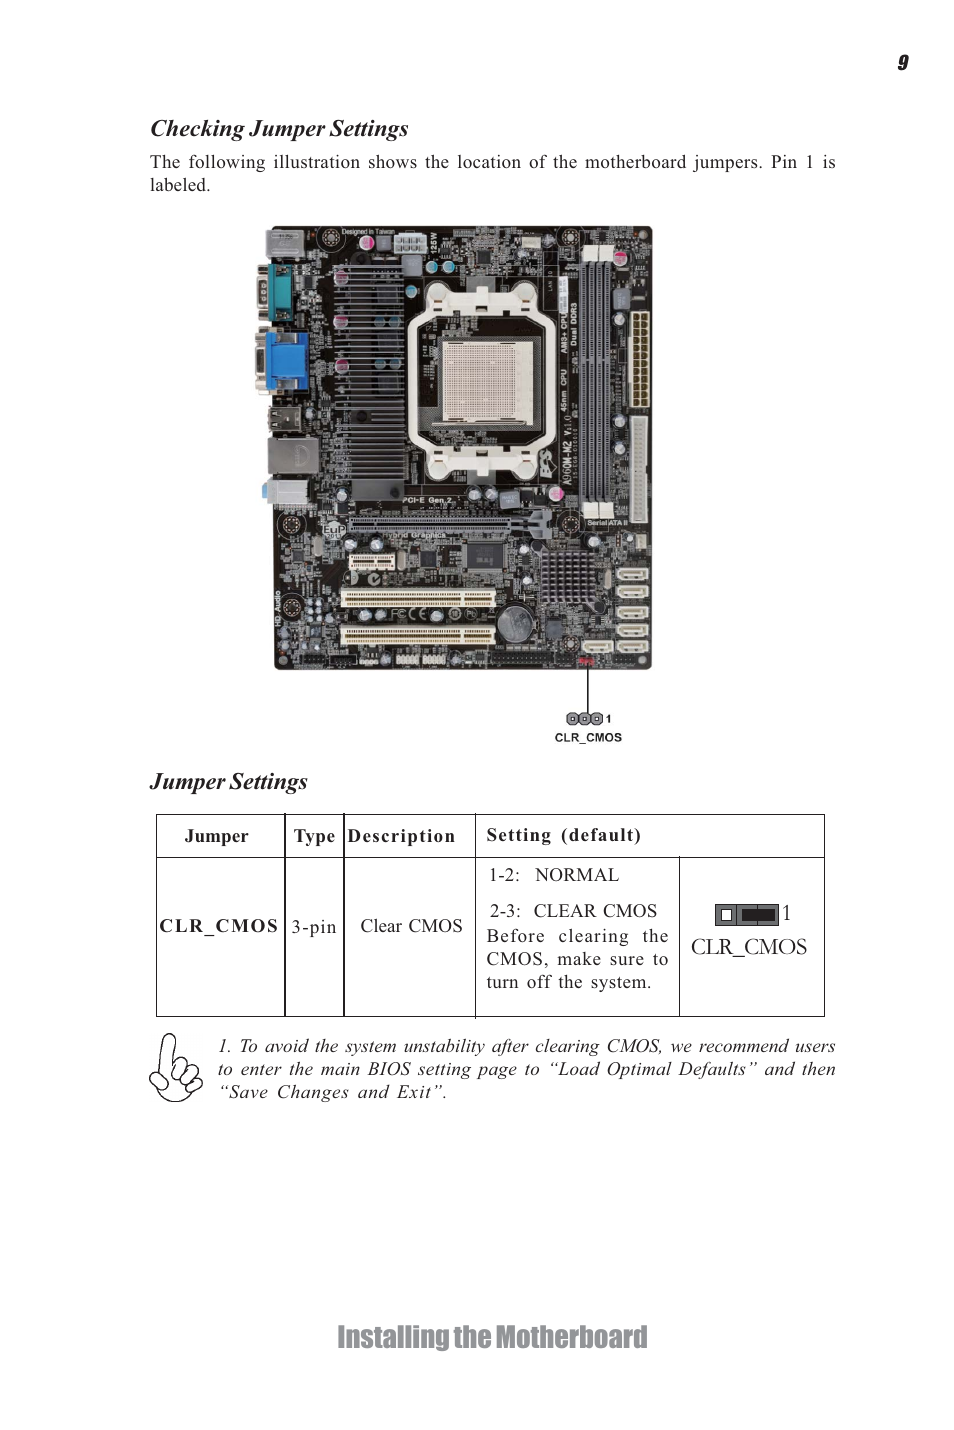 Mainboard user manual.